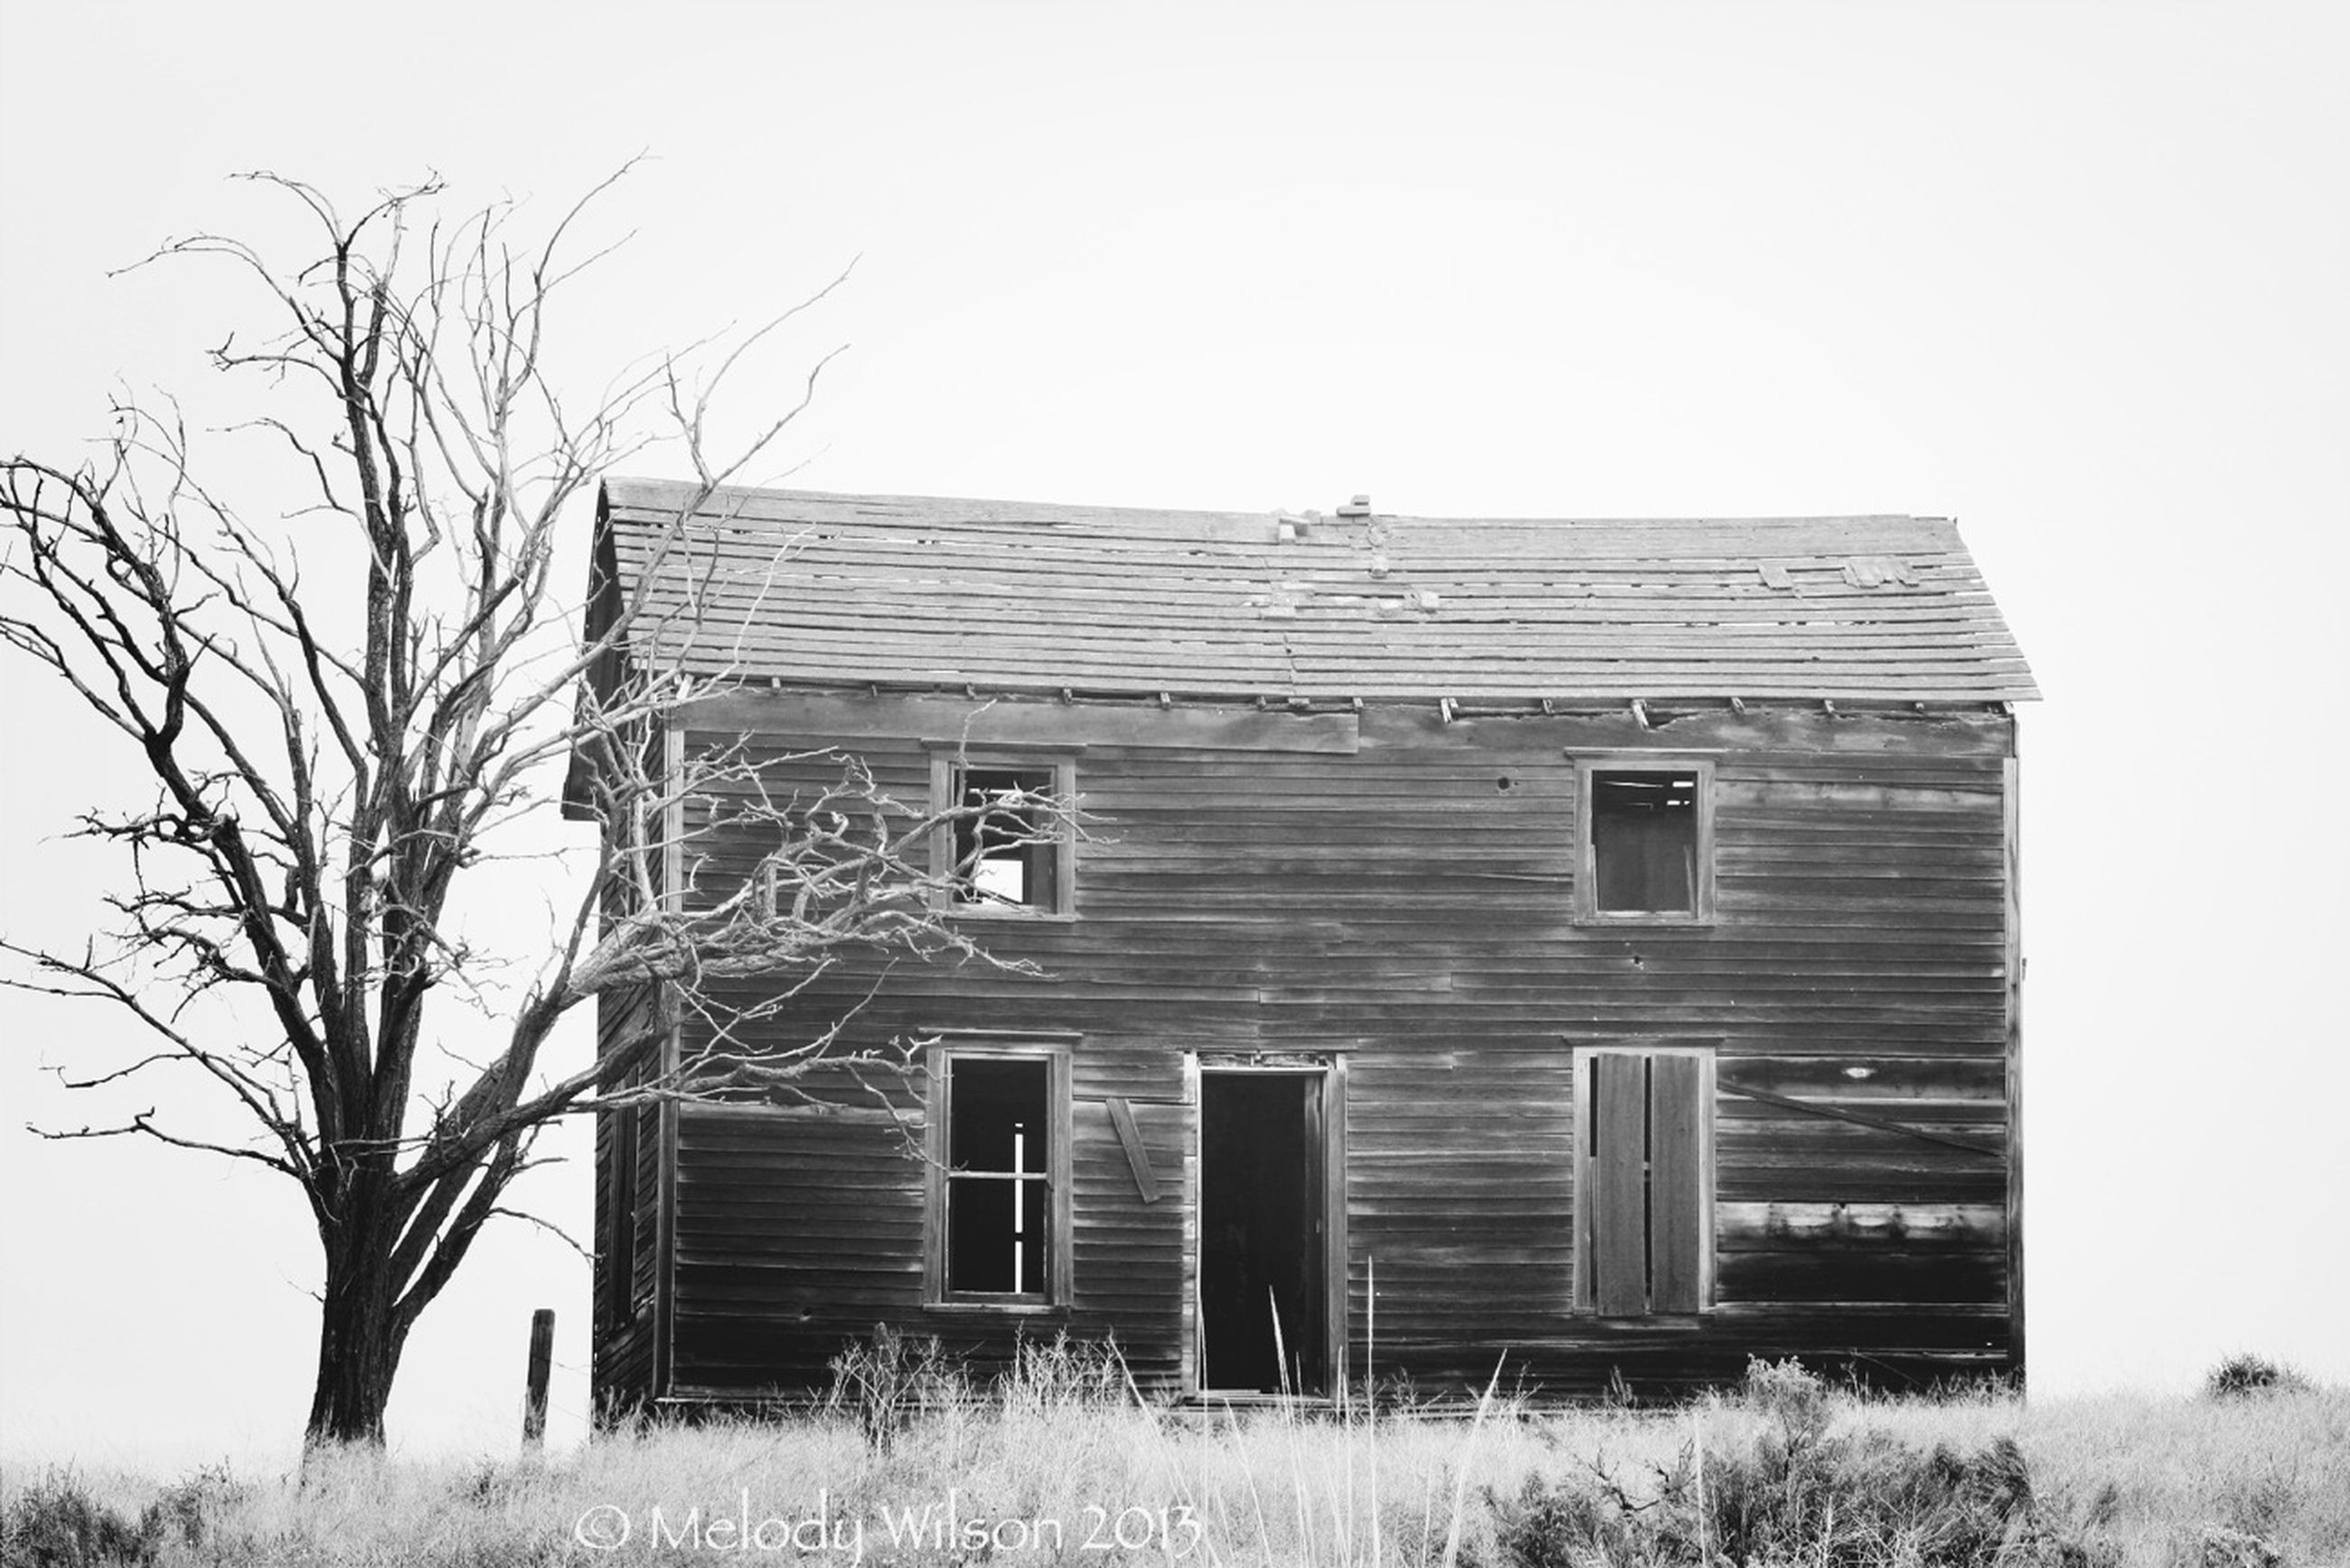 architecture, built structure, building exterior, house, abandoned, clear sky, old, window, obsolete, residential structure, damaged, tree, low angle view, run-down, day, field, bare tree, exterior, barn, sky